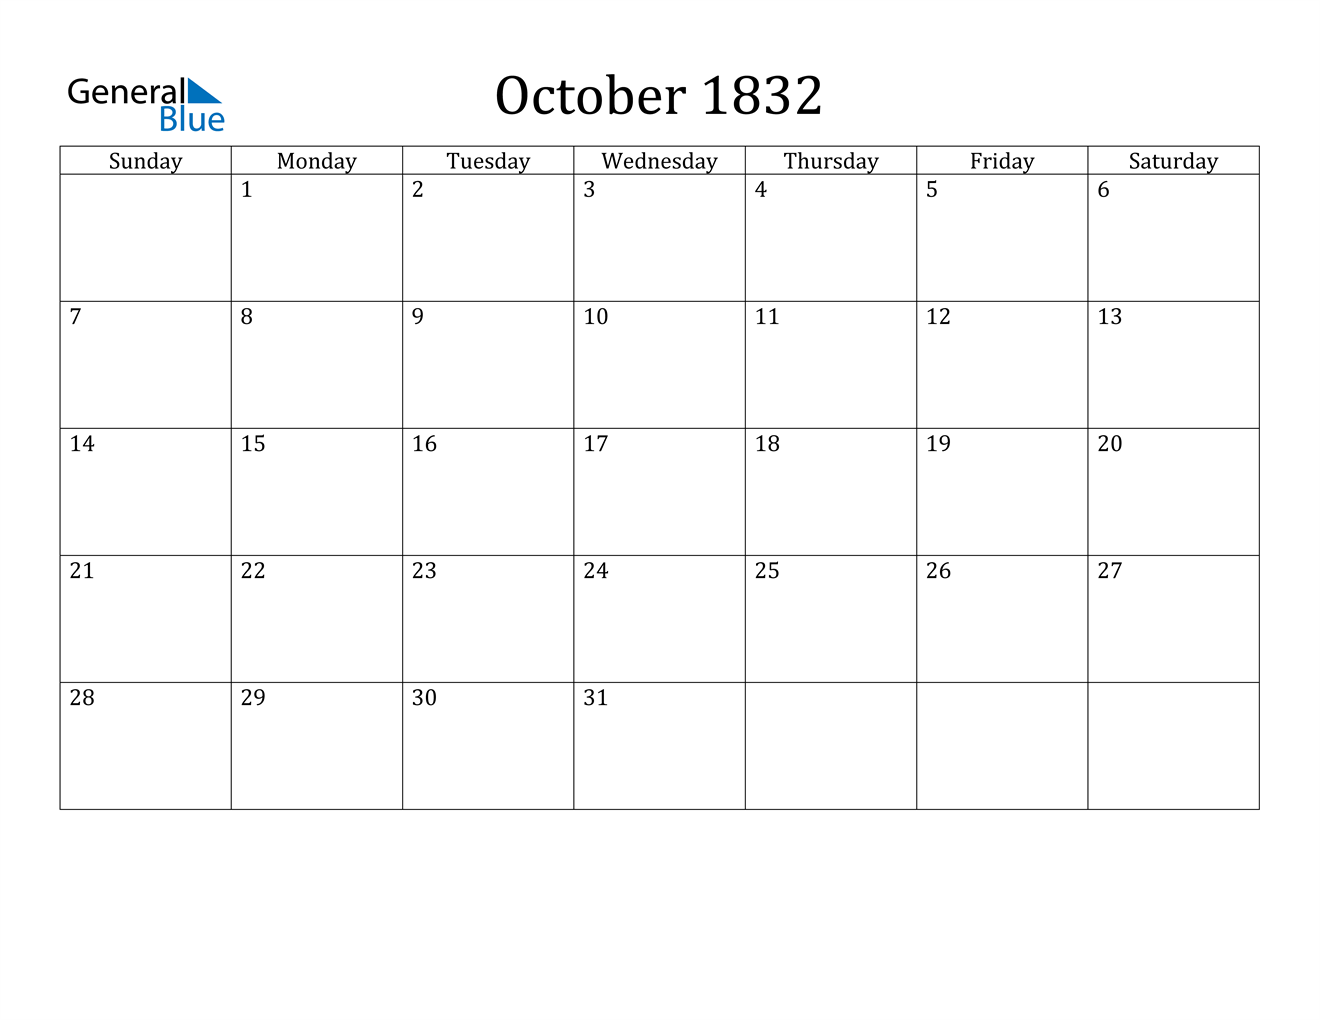 Image of October 1832 Calendar